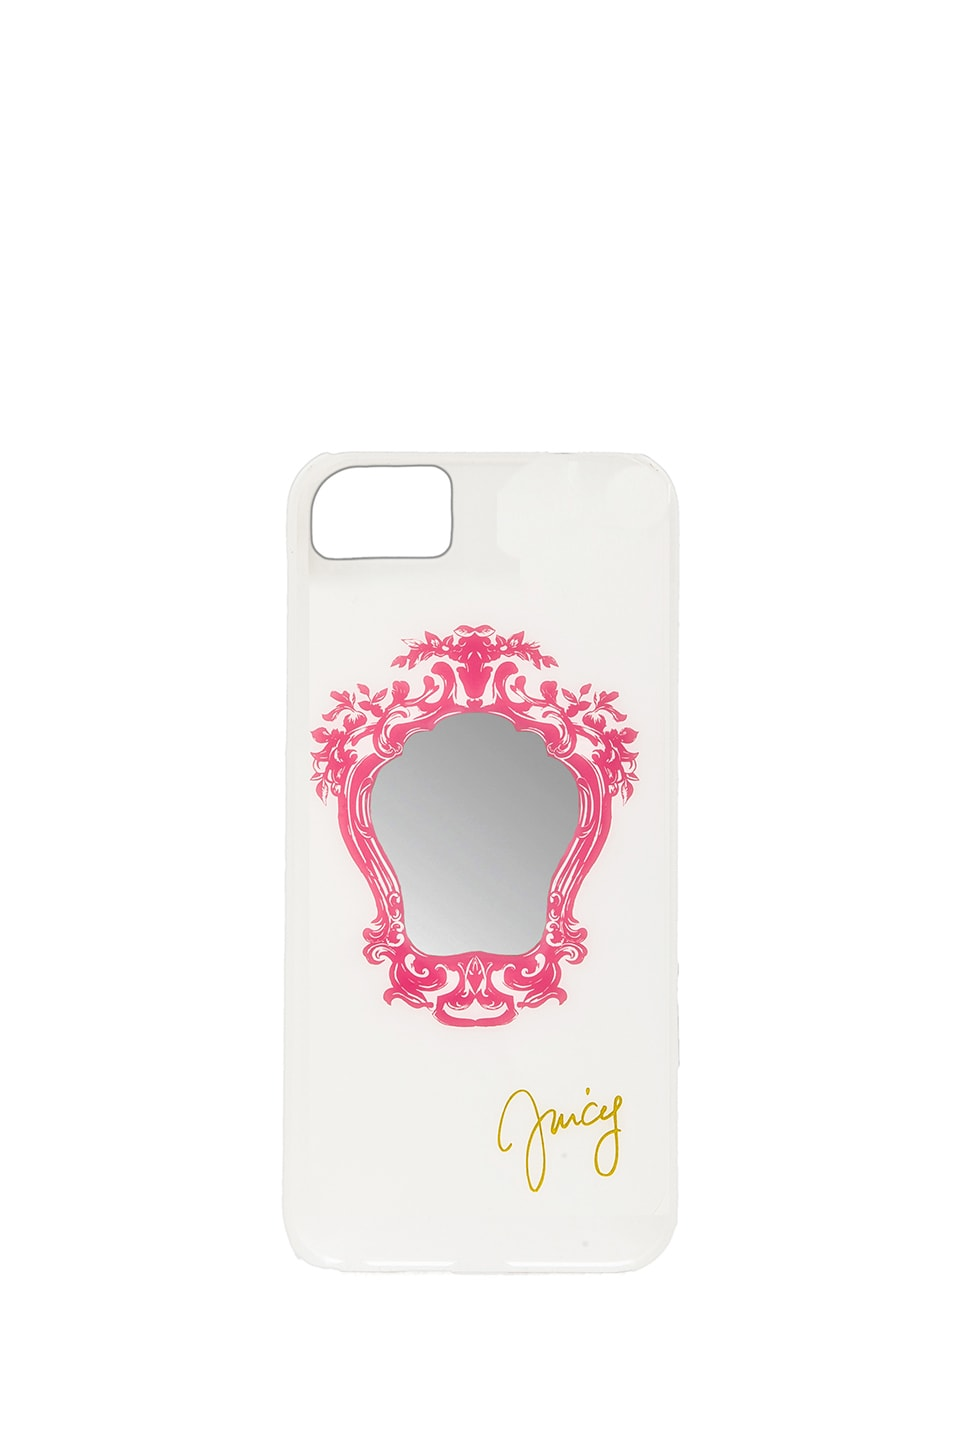 Juicy Couture Mirror iPhone 5 Case in Multi